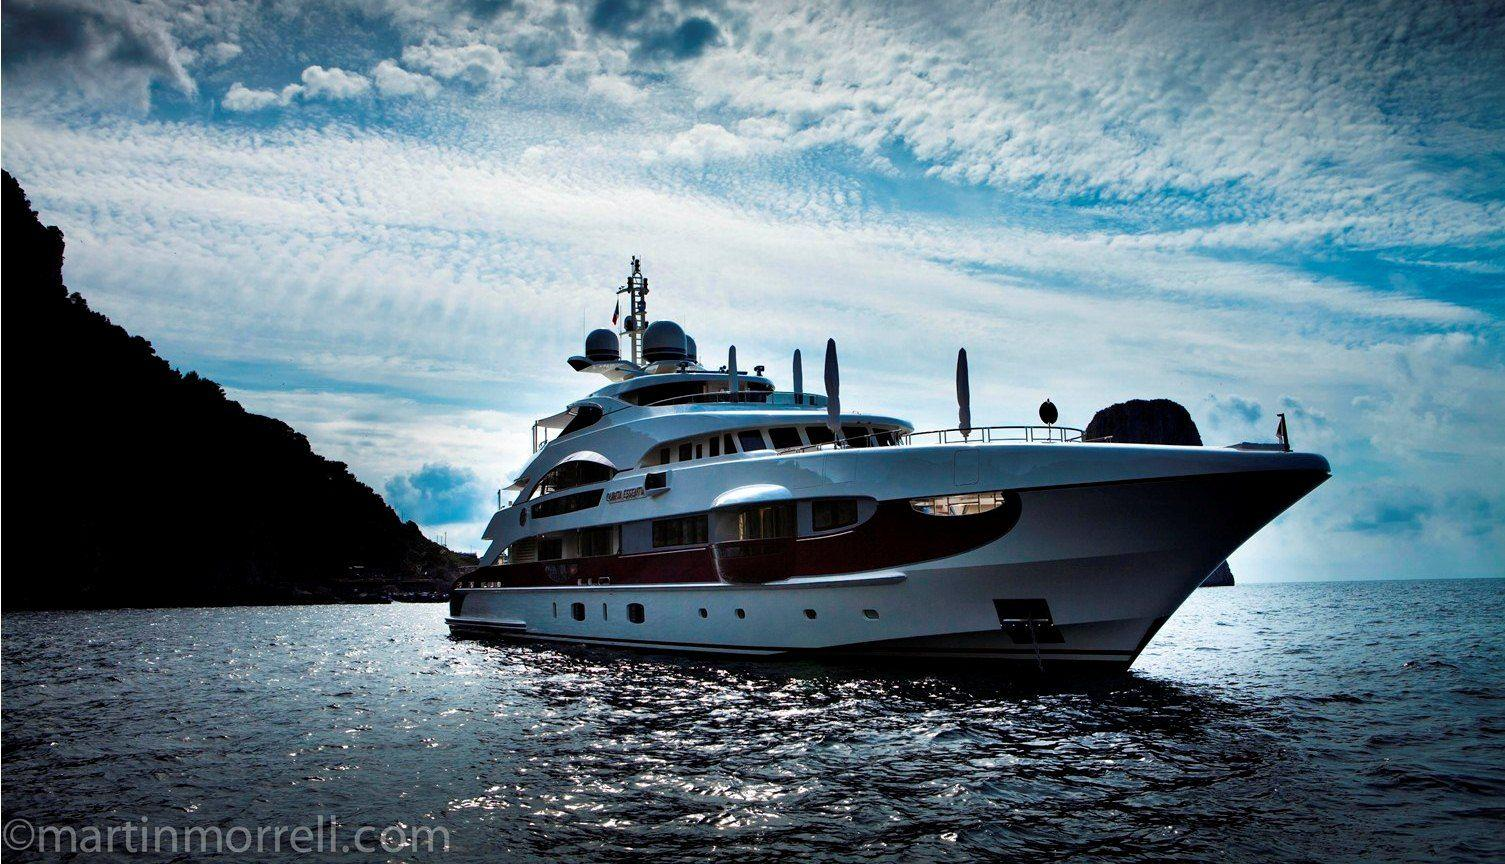 Yacht Charter Boat Broker and Agent company list.